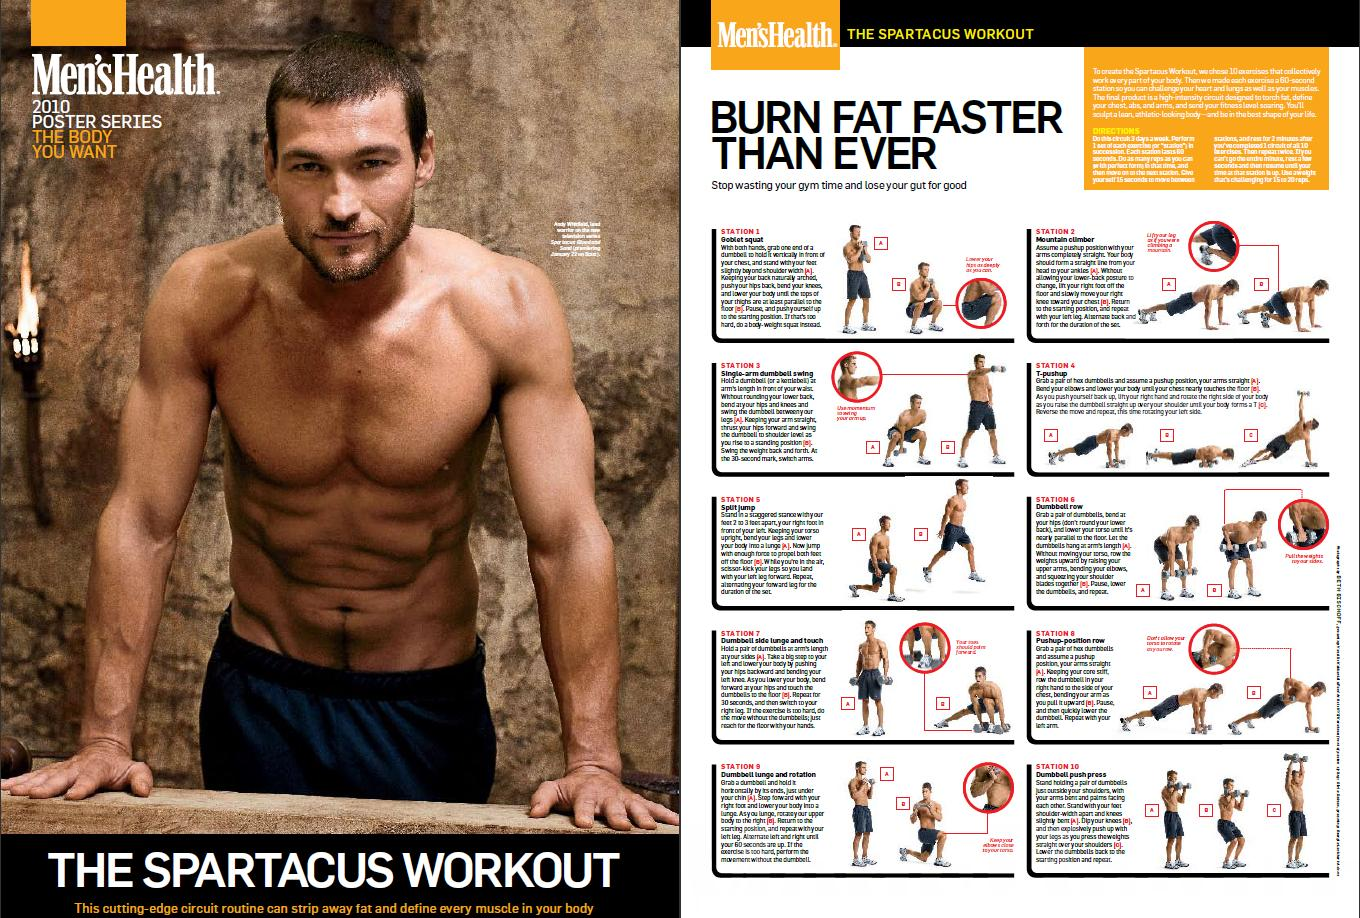 Muscle Town Gym Legends: Massive Pecs Chest Sculpting Workout for Men Men's Super Hero Shirts, Women's Super Hero Shirts, Leggings, Gadgets Find this Pin and more on Workouts for Men by WorkoutLabs. Bodybuilding muscle workout using different workout techniques like uni-set, multi-set, pyramid routines, super breathing sets and much more.